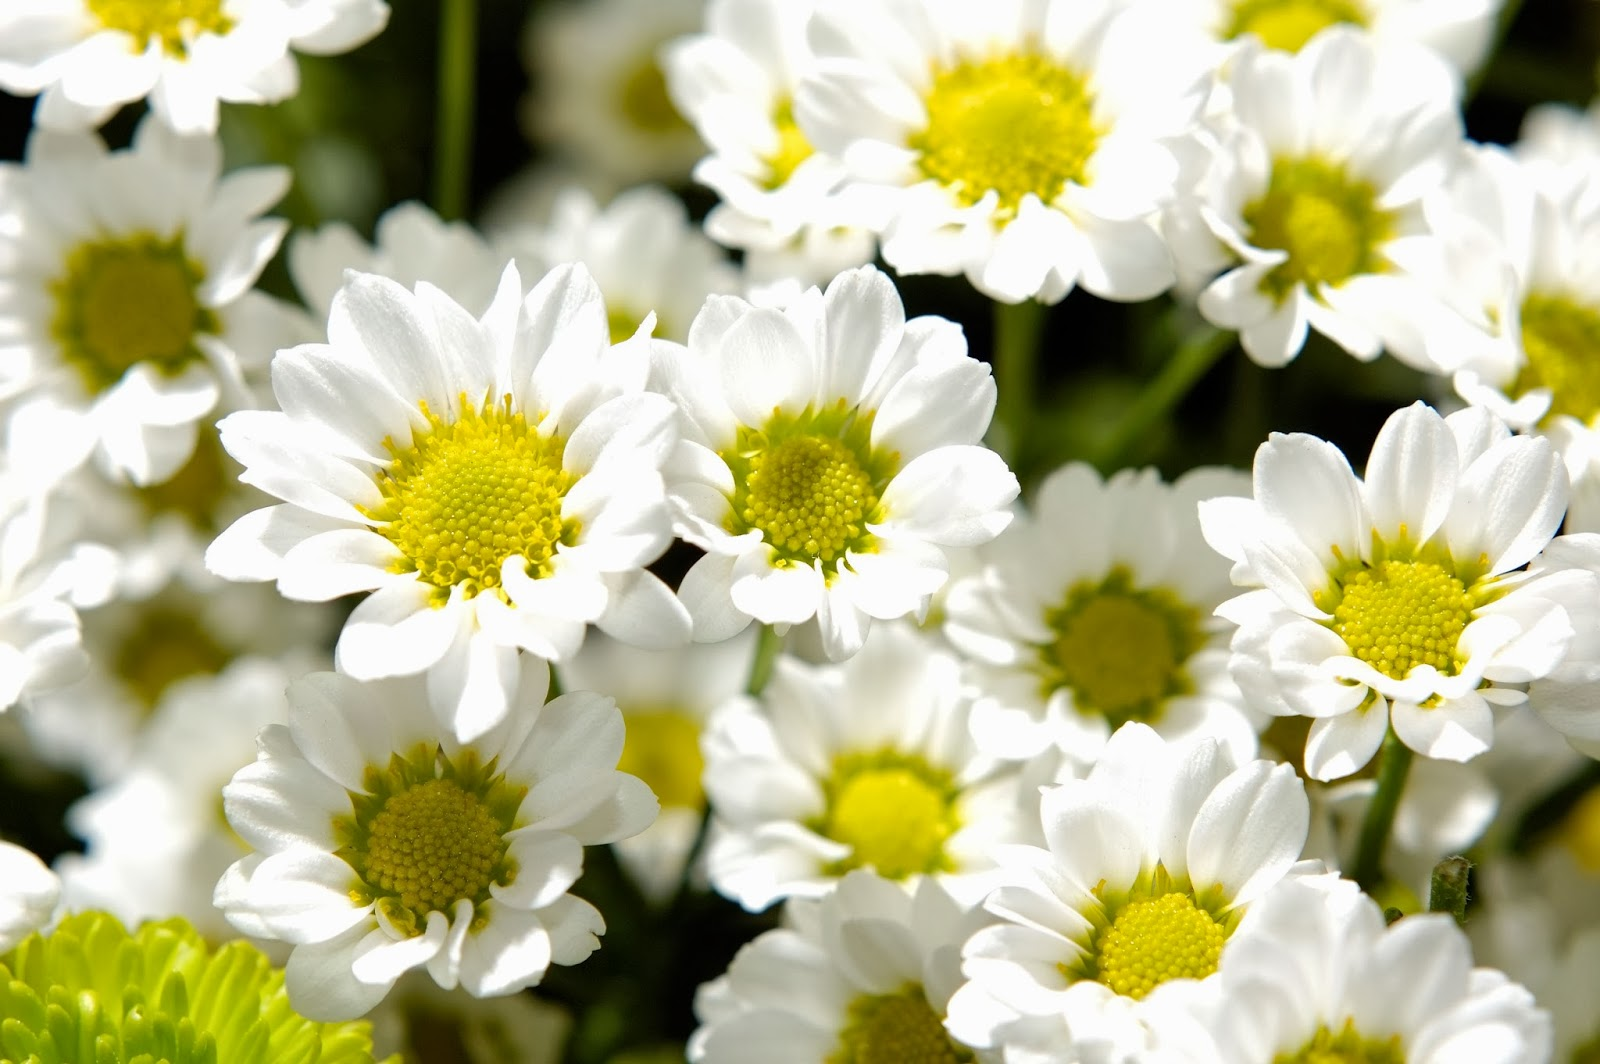 Flowers Wallpapers: January 2014